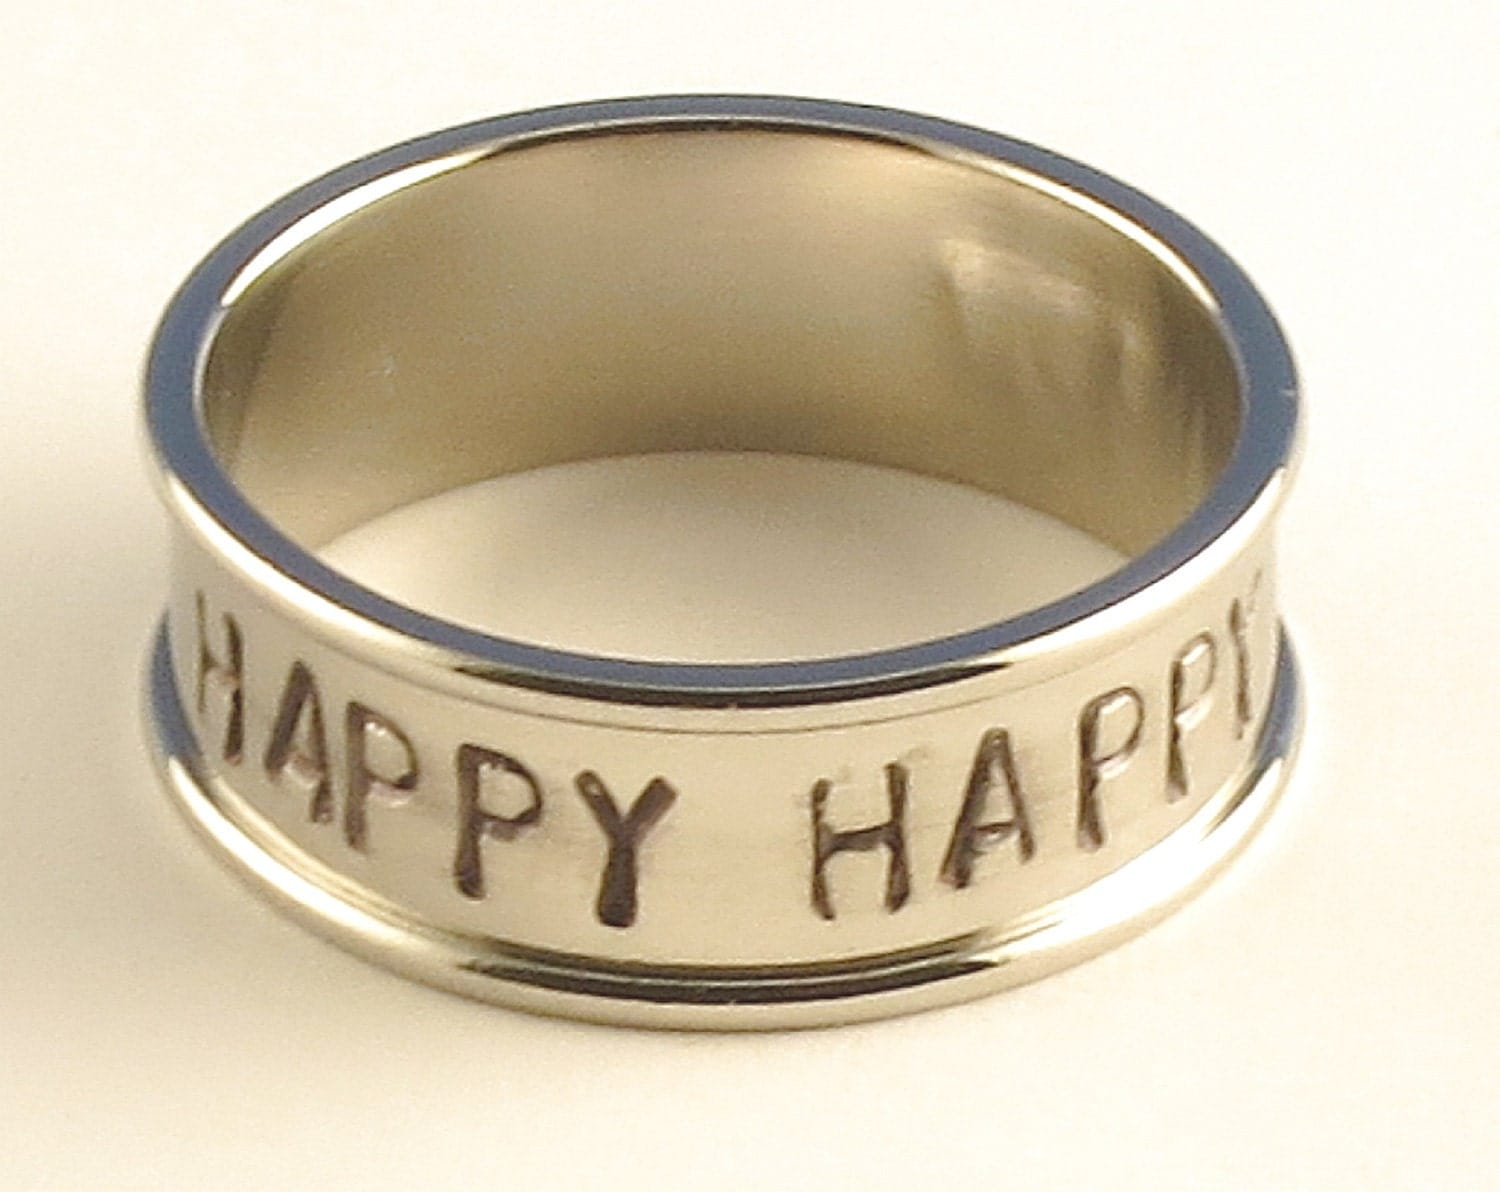 HAPPY HAPPY HAPPY Stainless Steel Channel Band Name Ring 7mm